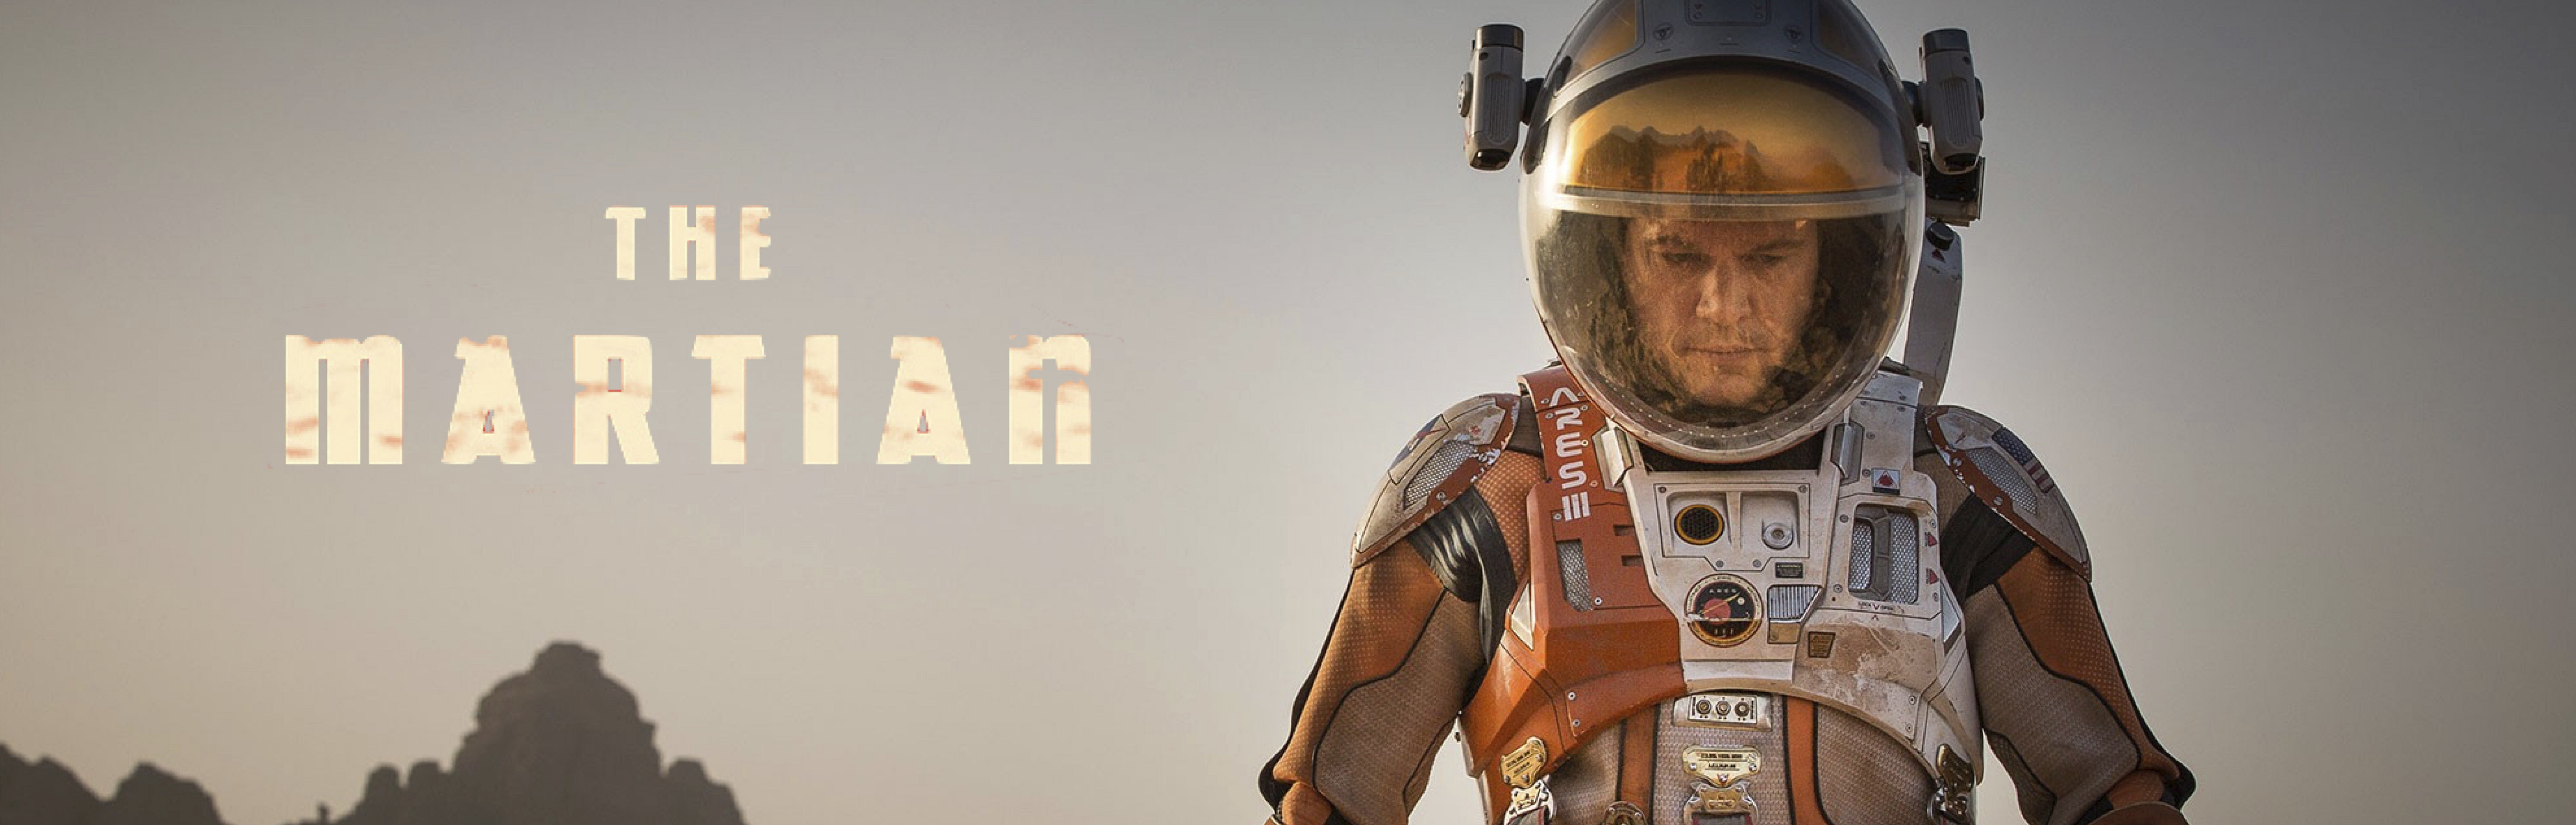 the martian full movie download in hindi 300mb